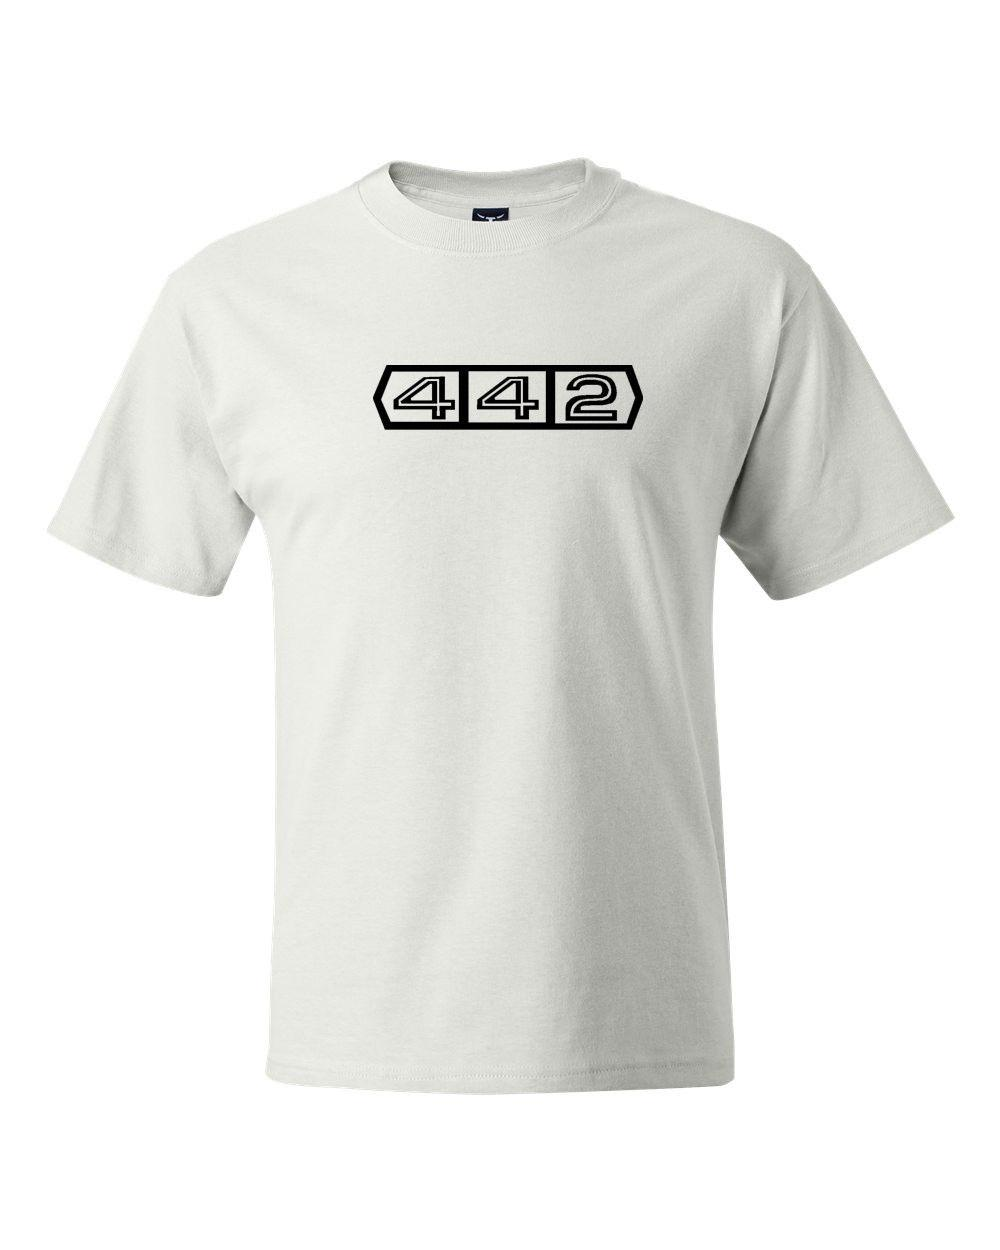 7683d402 Oldsmobile 442 Classic Vintage Car Logo T Shirts S 5XLFunny Unisex Casual  Tshirt Gift T Shirt Awesome Shirt Design From Allin1cases, $12.96|  DHgate.Com